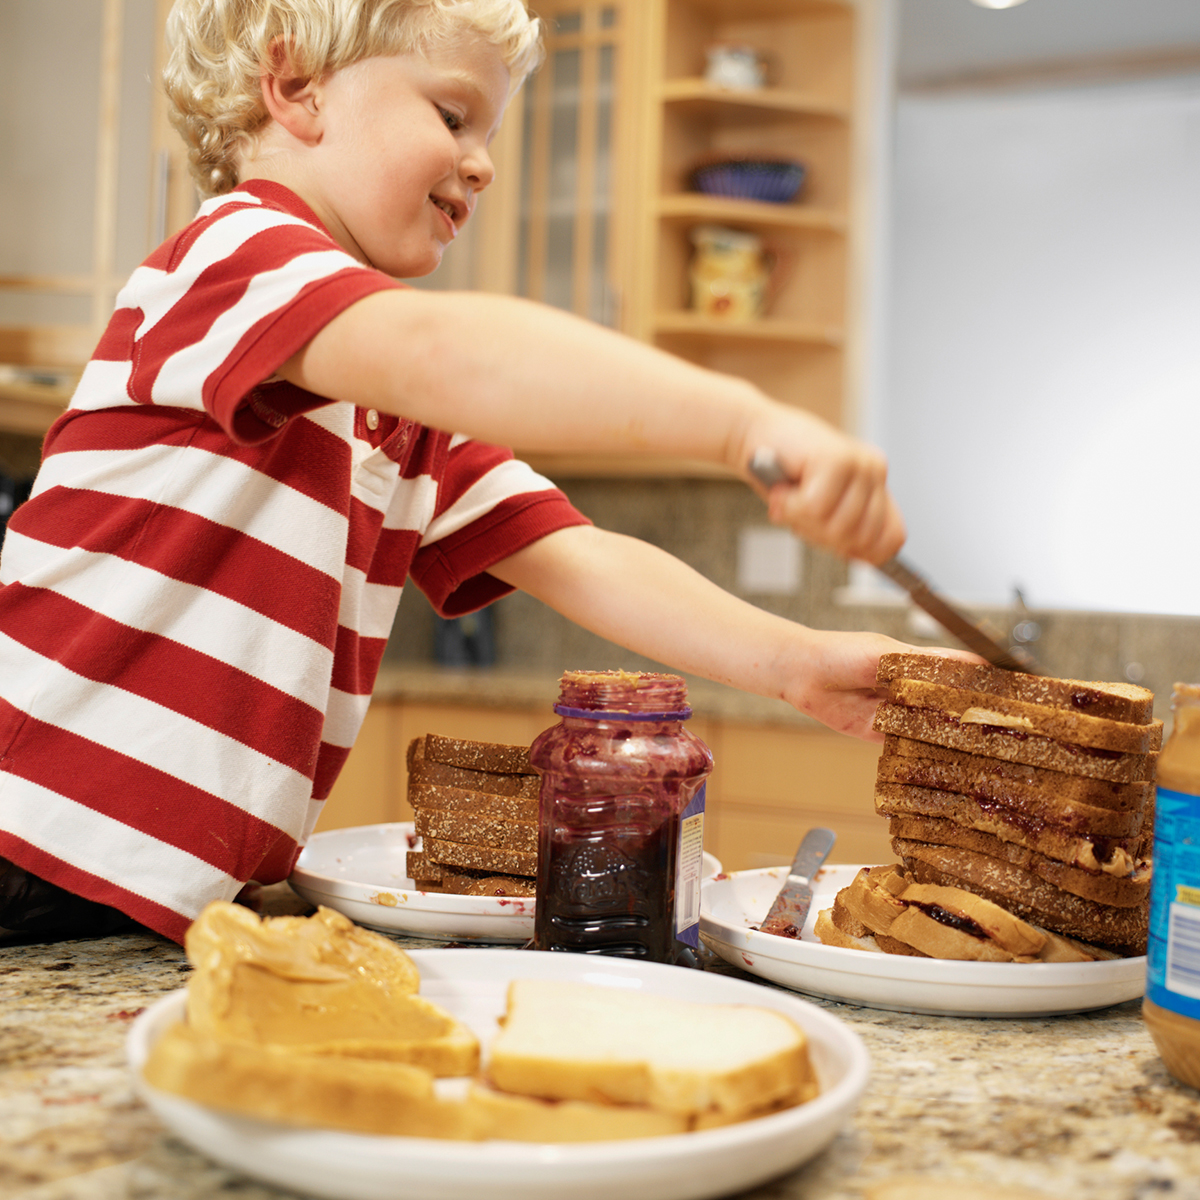 Get the kids to help with making lunch. Photo: White Packert/Getty Images